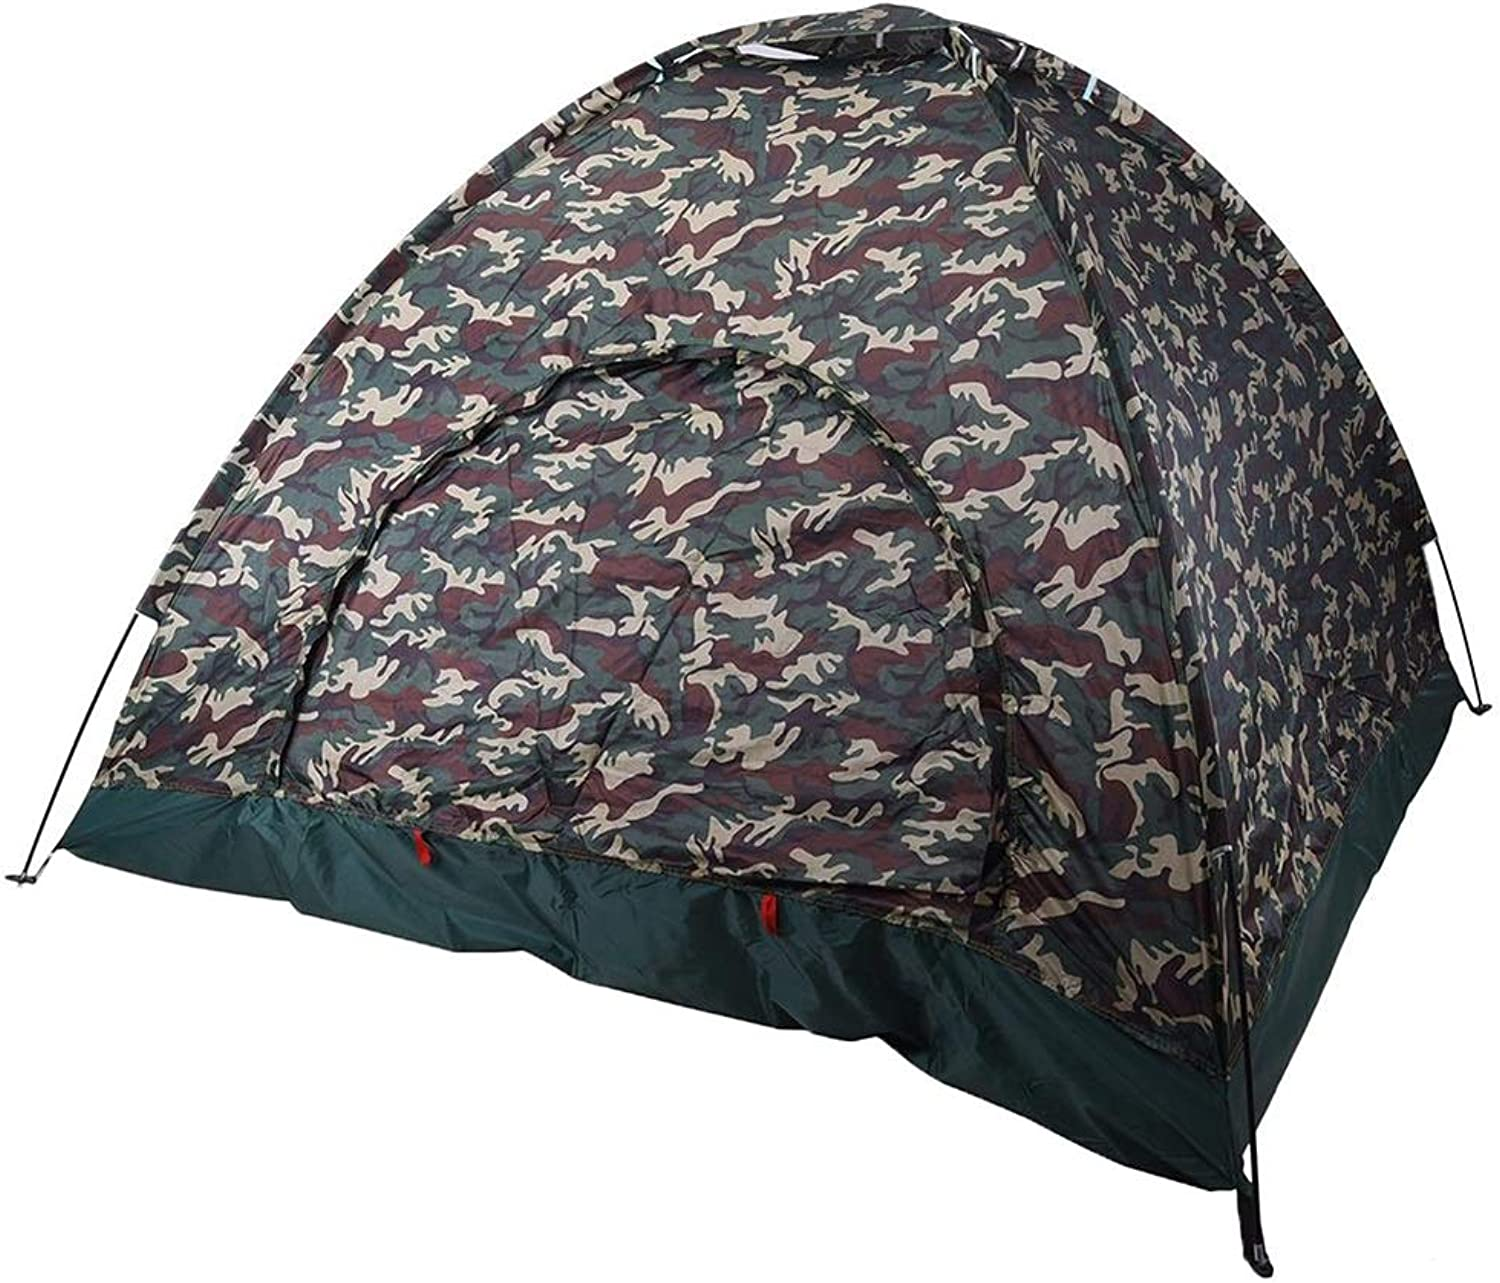 MEIGUIshop Tent  Outdoor 4 Person Tent Structure Stable Camping Tent (color   Camouflage, Size   200  200  135 cm)